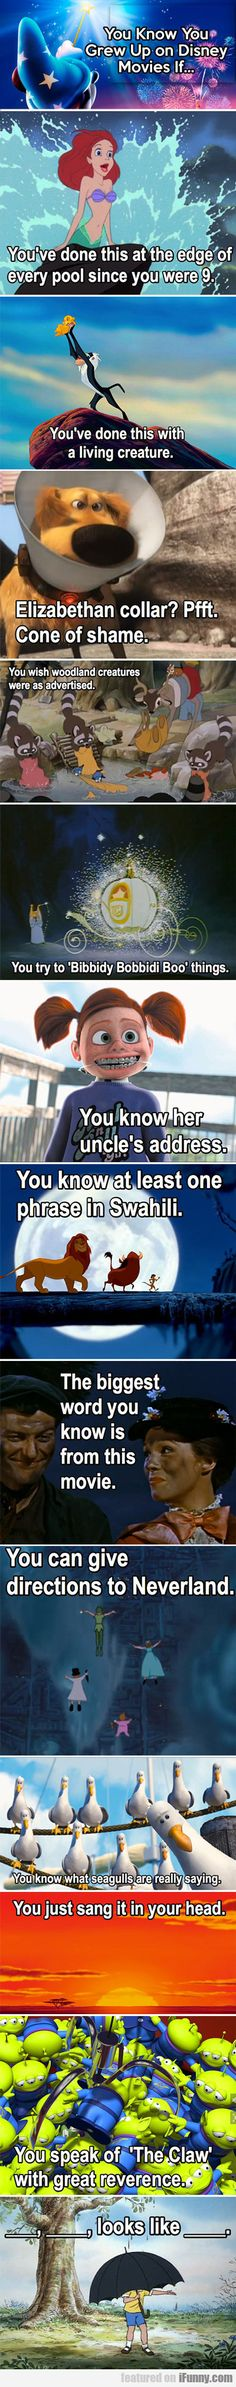 Disney movies all the way!<3